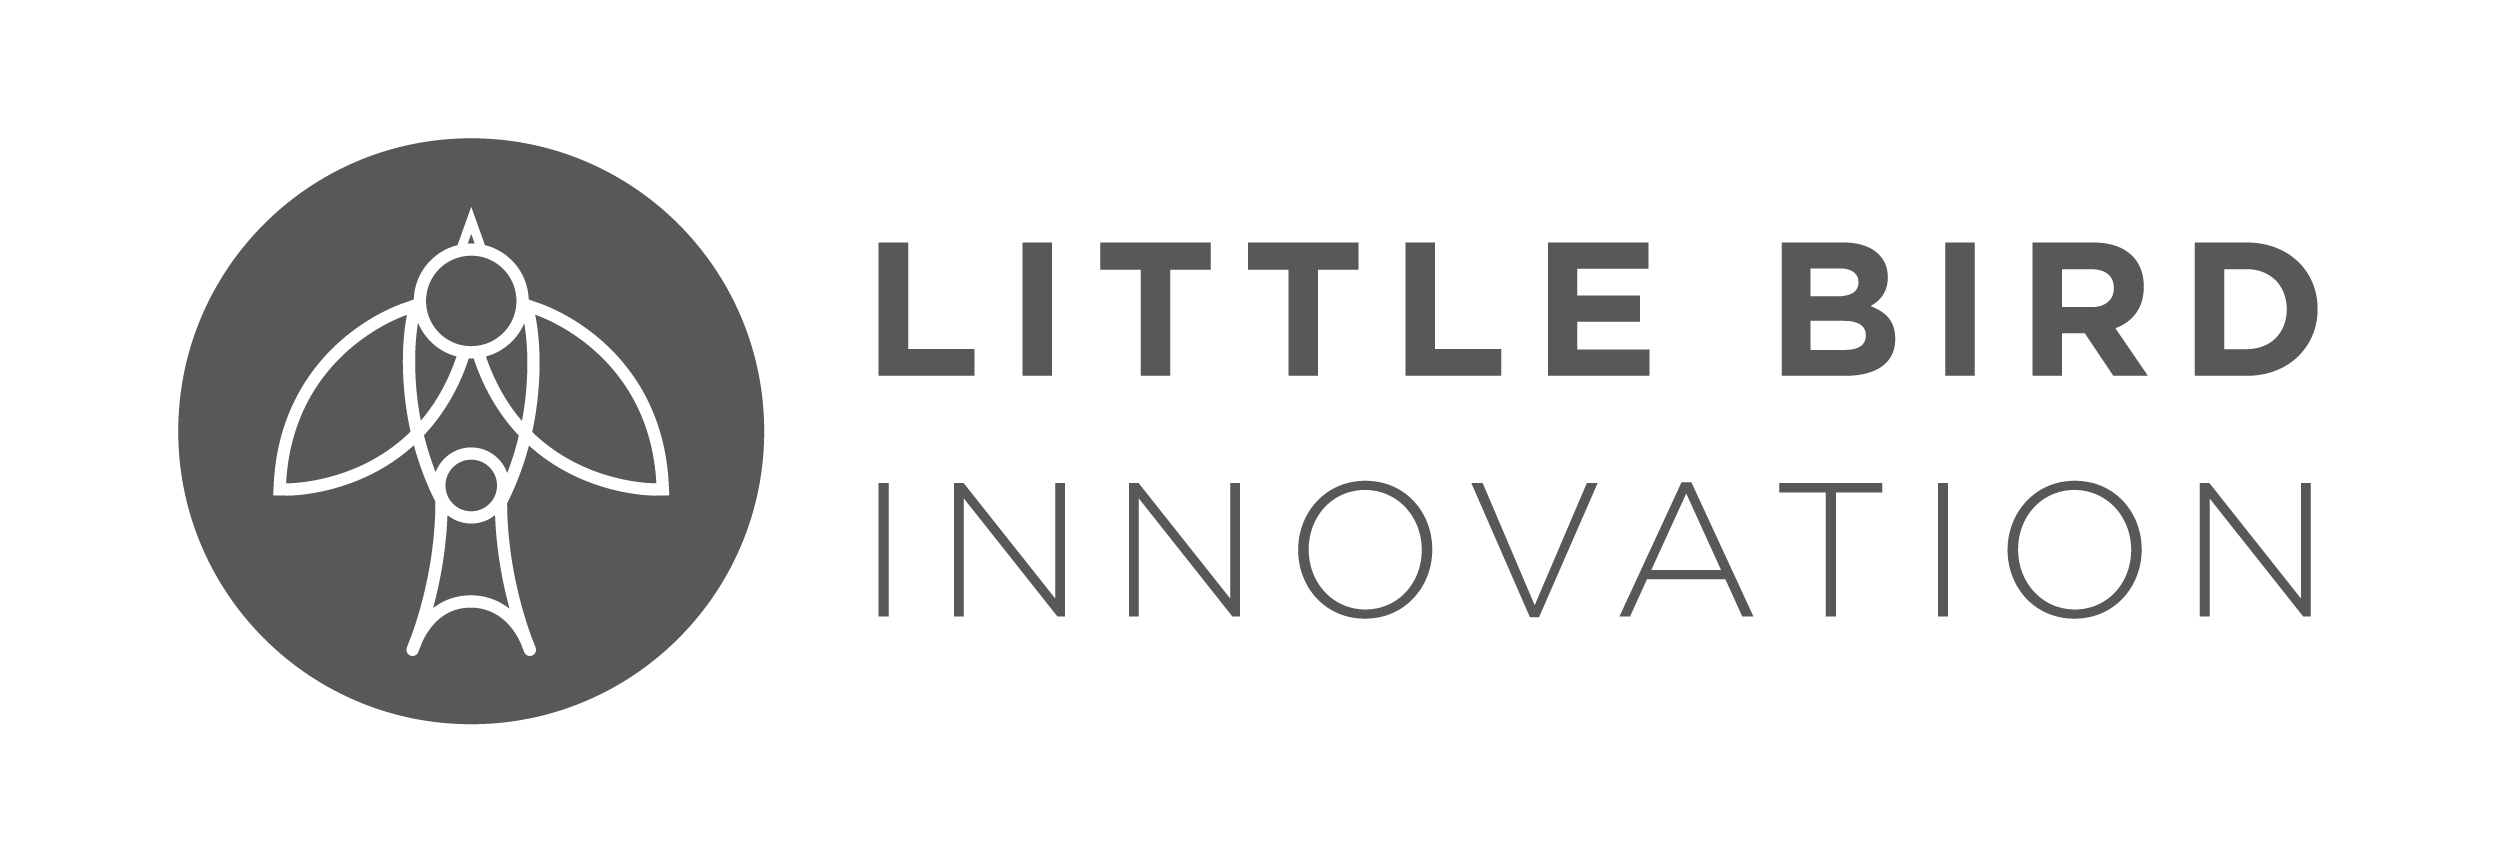 Little Bird Innovation  is a Memphis-based research, strategy and design firm focused on projects that drive economic development, social impact and civic innovation. We collaborate with others to tackle challenges that inspire us. From developing plans to support food entrepreneurship amongst immigrants and refugees to helping the Memphis public library system redefine its value and role in the lives of its residents, we bring a people-centered approach to solving complex problems.    More information at  Little Bird Innovation .